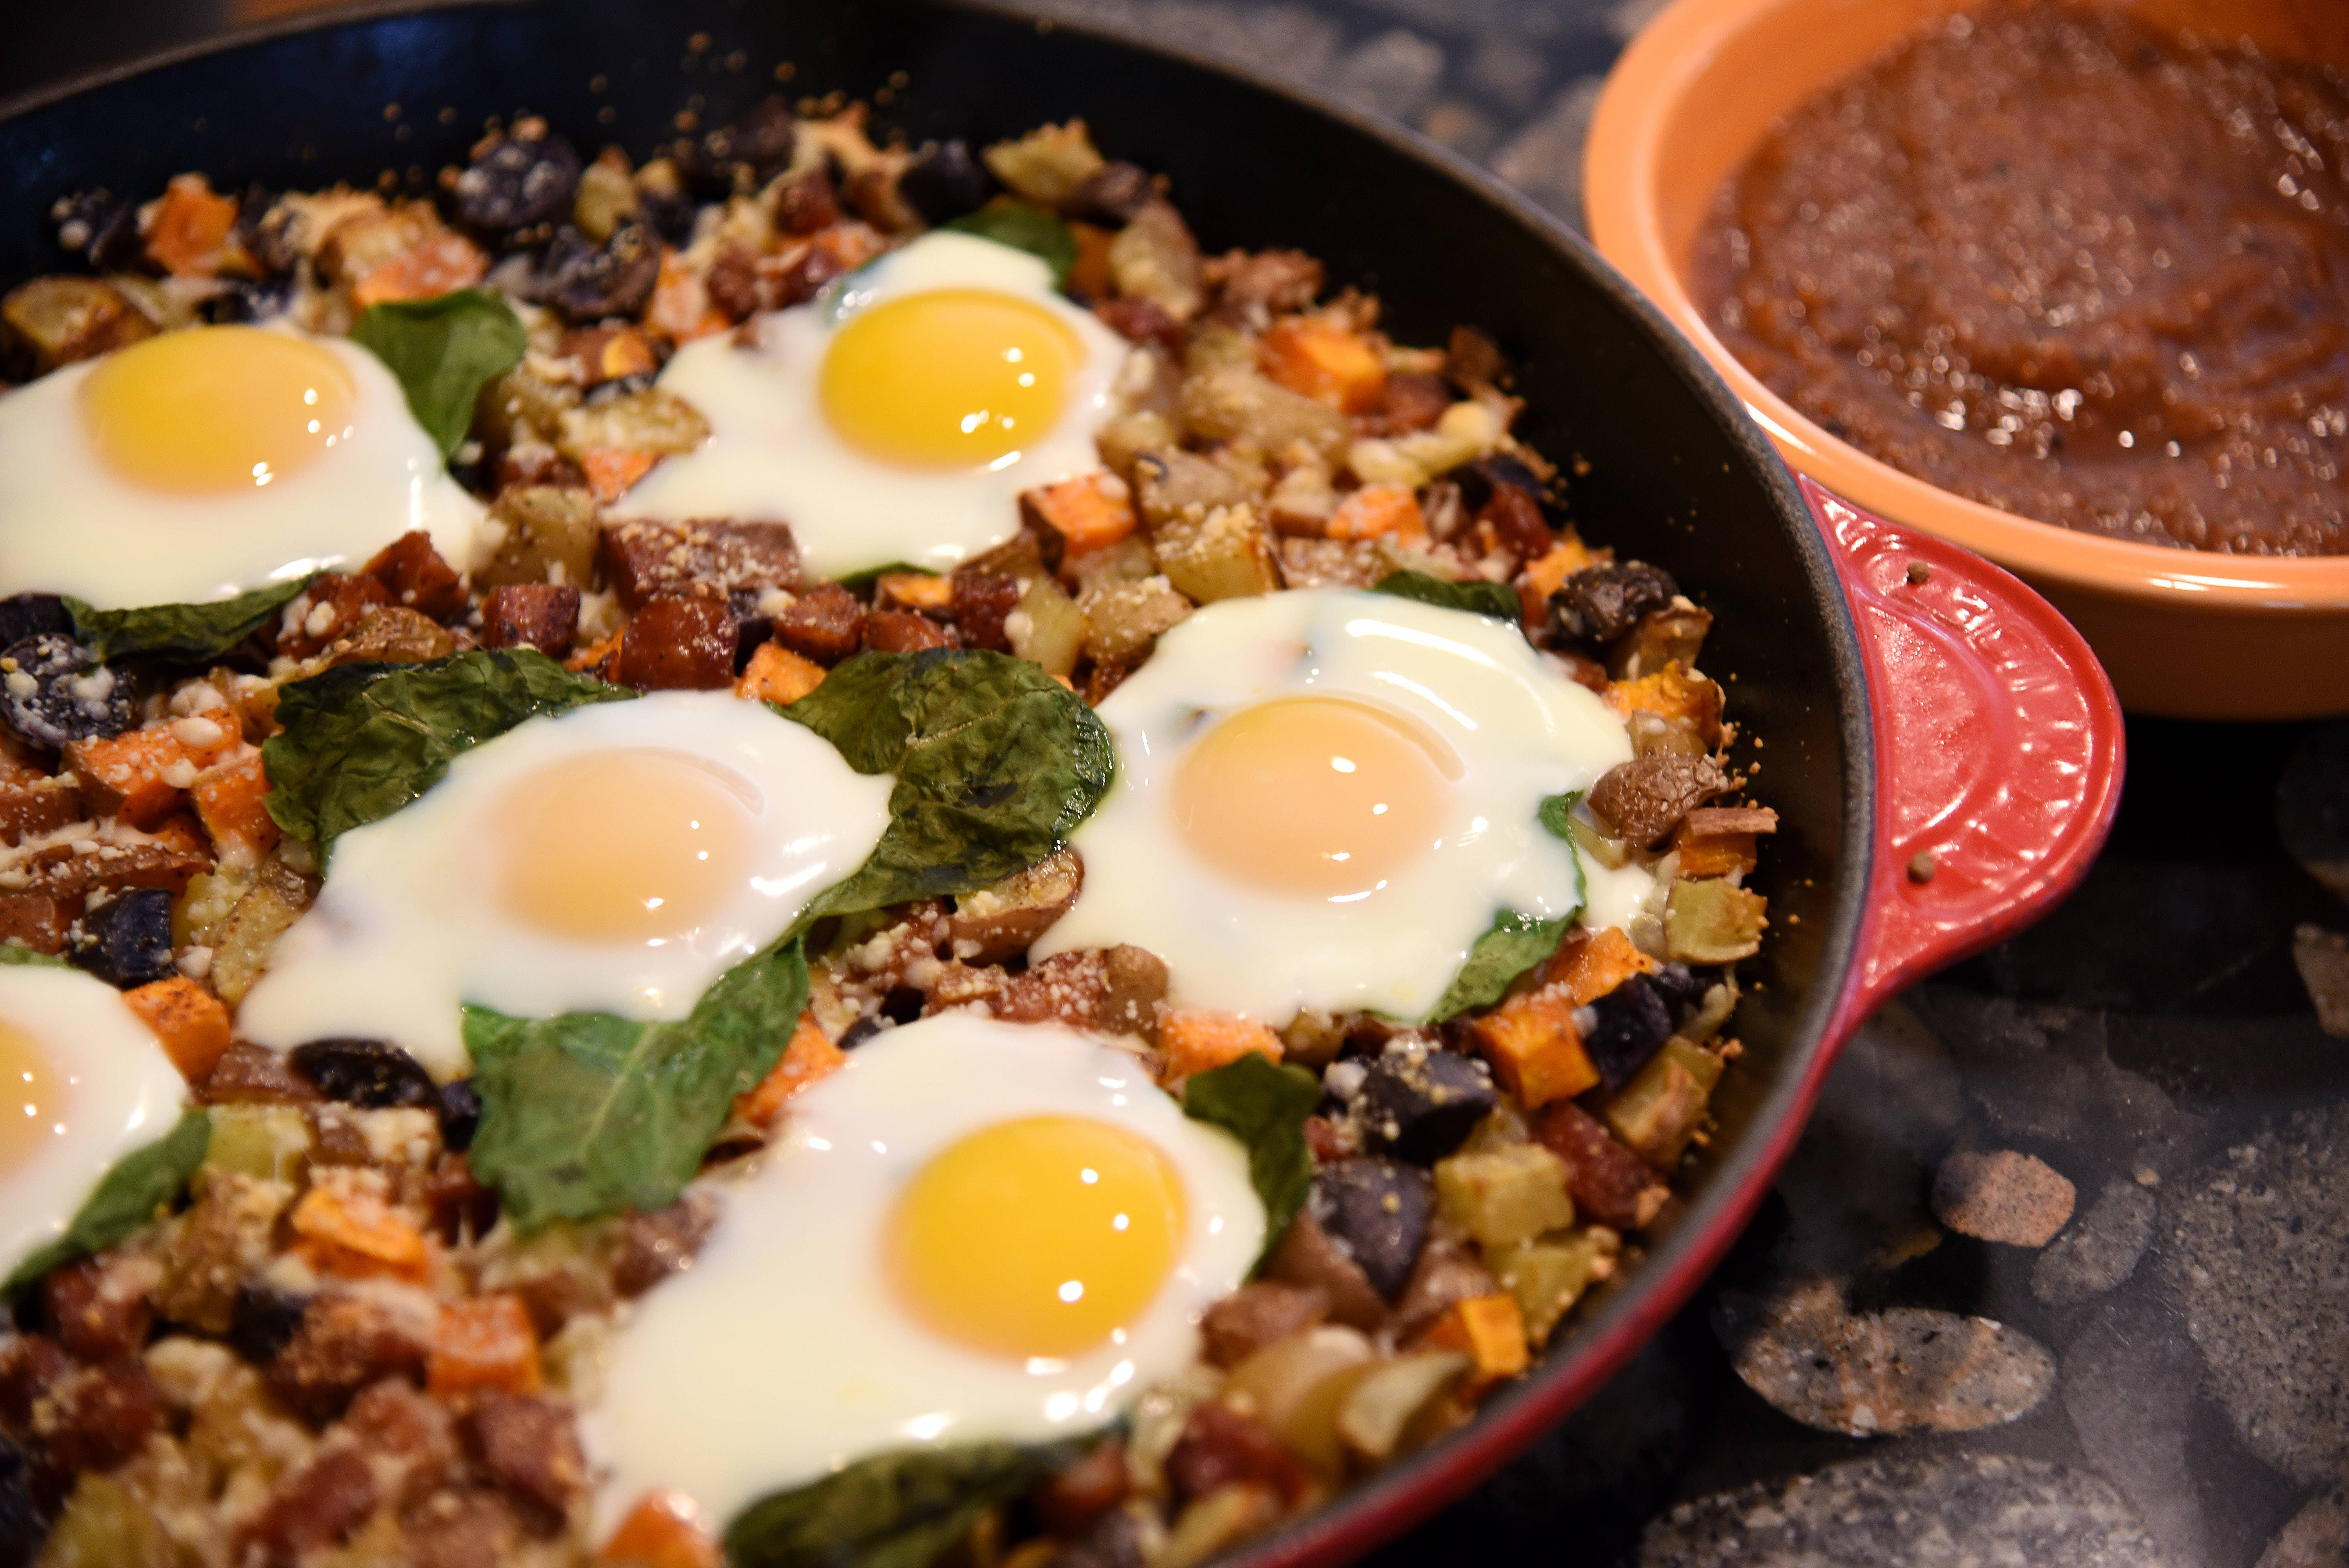 Sylvia Schafer of Cary made a dish using four different types of potatoes, andouille sausage, spinach and eggs with a hot salsa for the Cook of the Week Challenge judges.